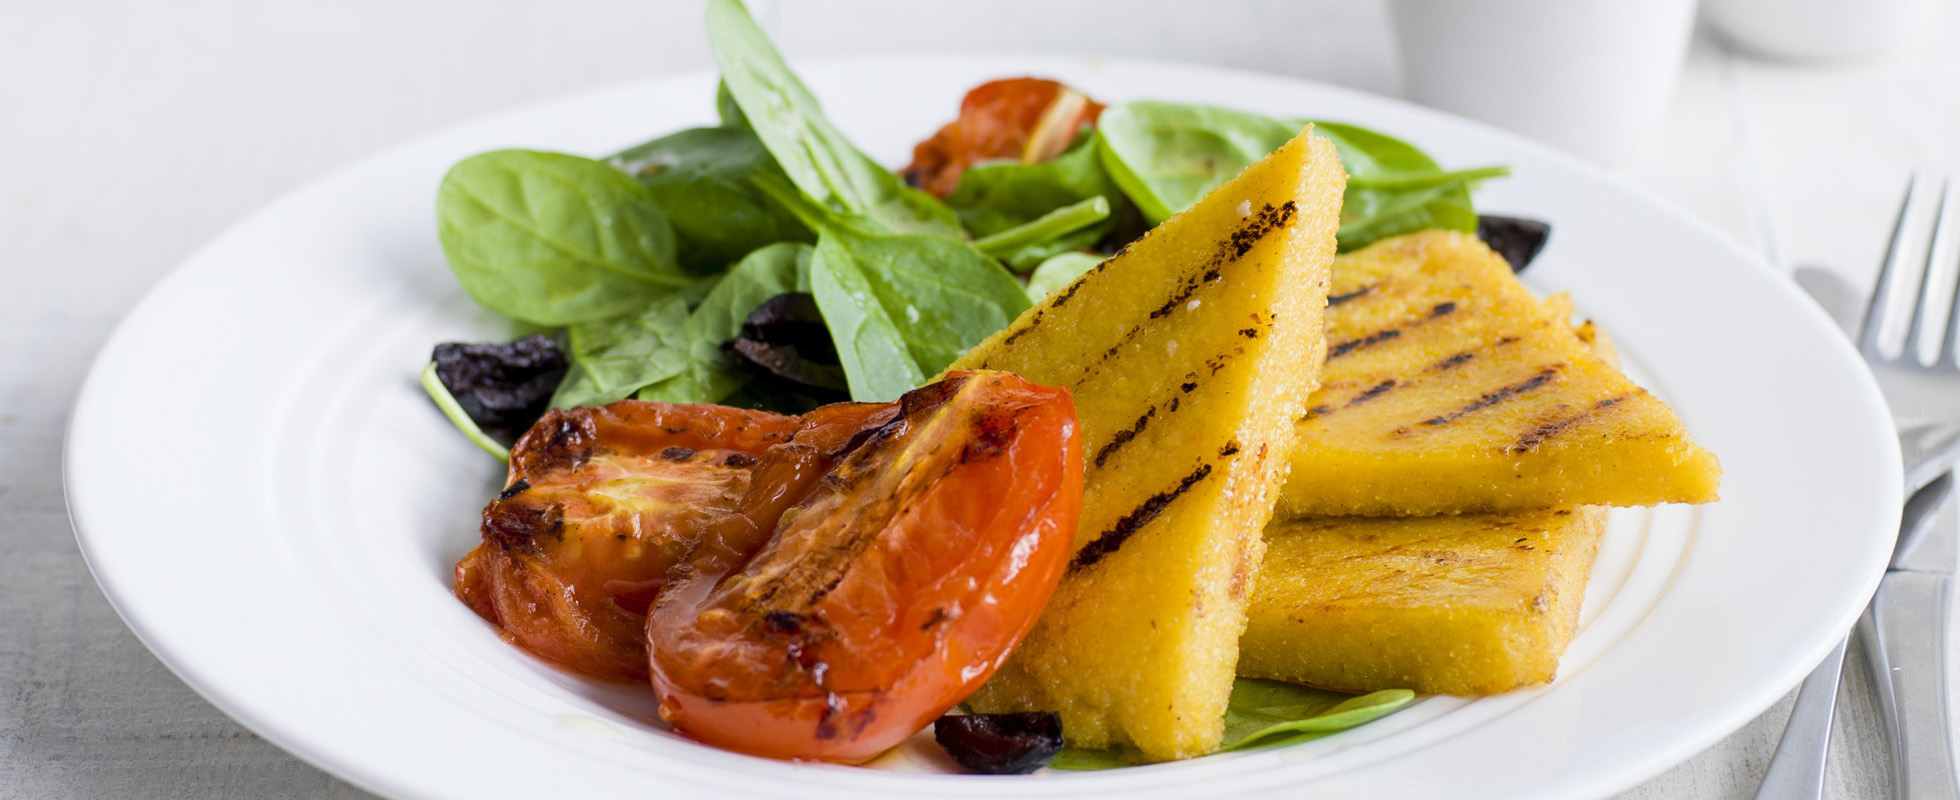 Best ever healthy italian recipes under 500 calories olive magazine looking for healthy meal ideas try this simple italian dish made with polenta cook in advance then cut into wedges and grill forumfinder Images